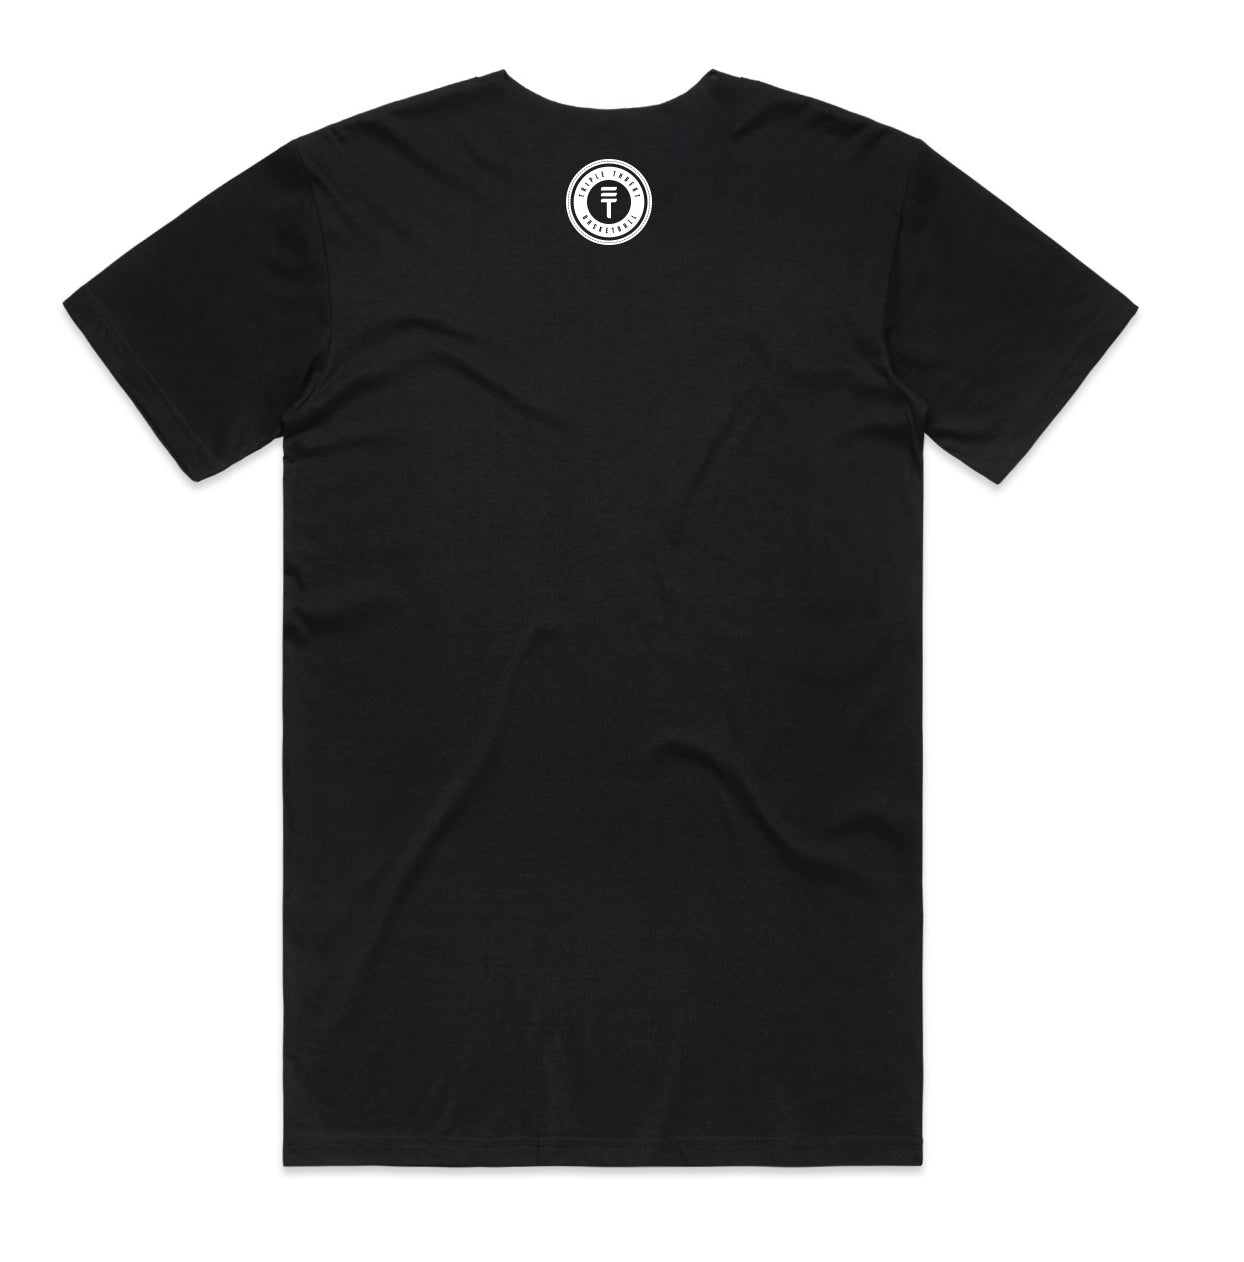 NEWTOWN T-SHIRT - BLACK